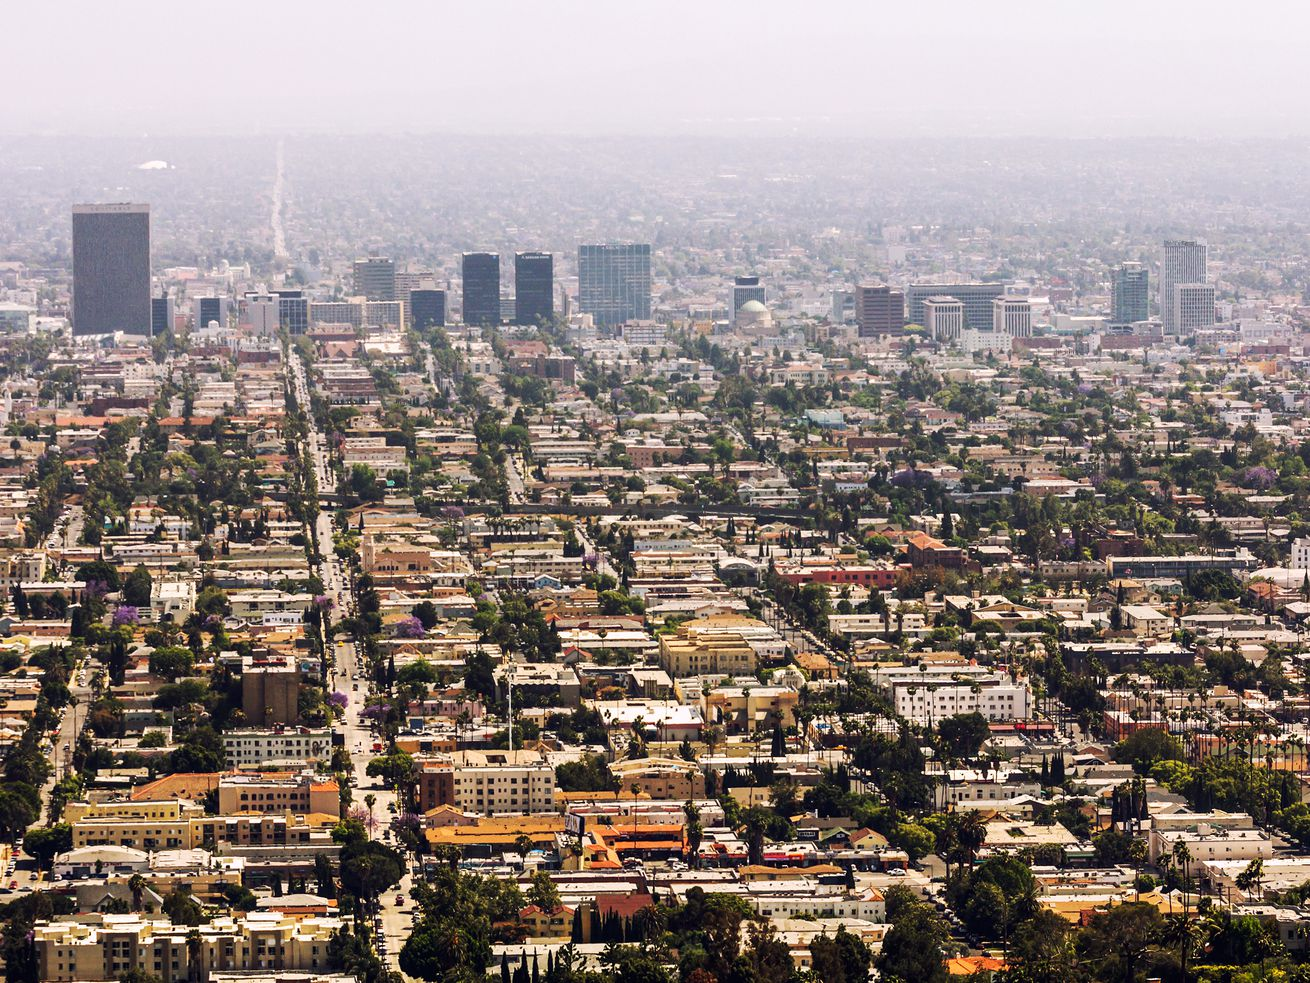 Around 631,000 units in Los Angeles are covered under the city's rent control ordinance.